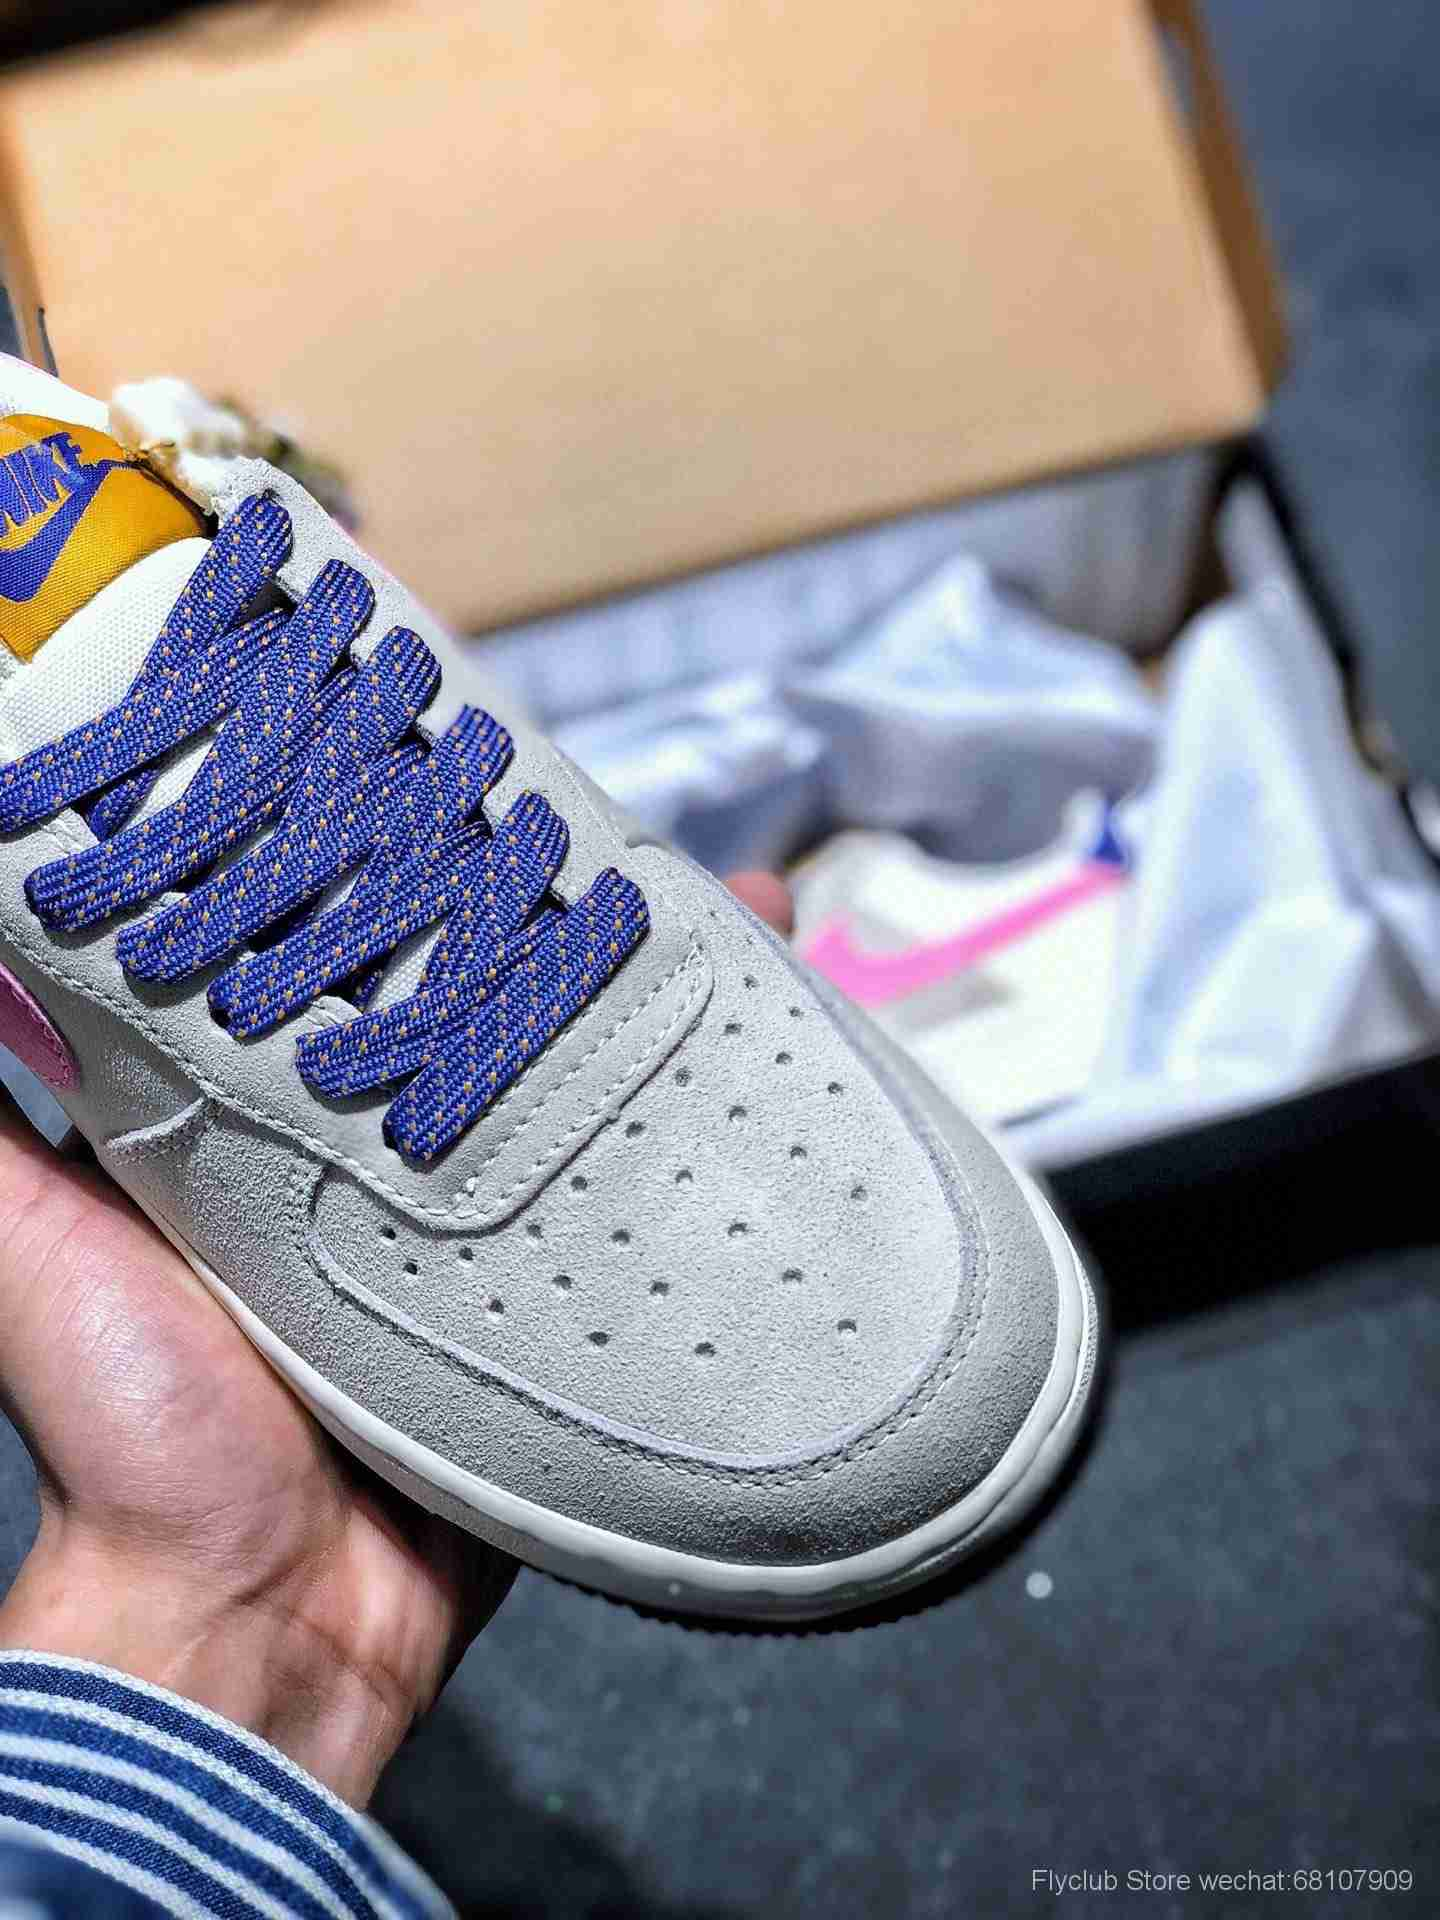 NK AIR FORCE 1 LOW RELEASING WITH ACG VIBES 登山者联名款空军一号CU3007-061